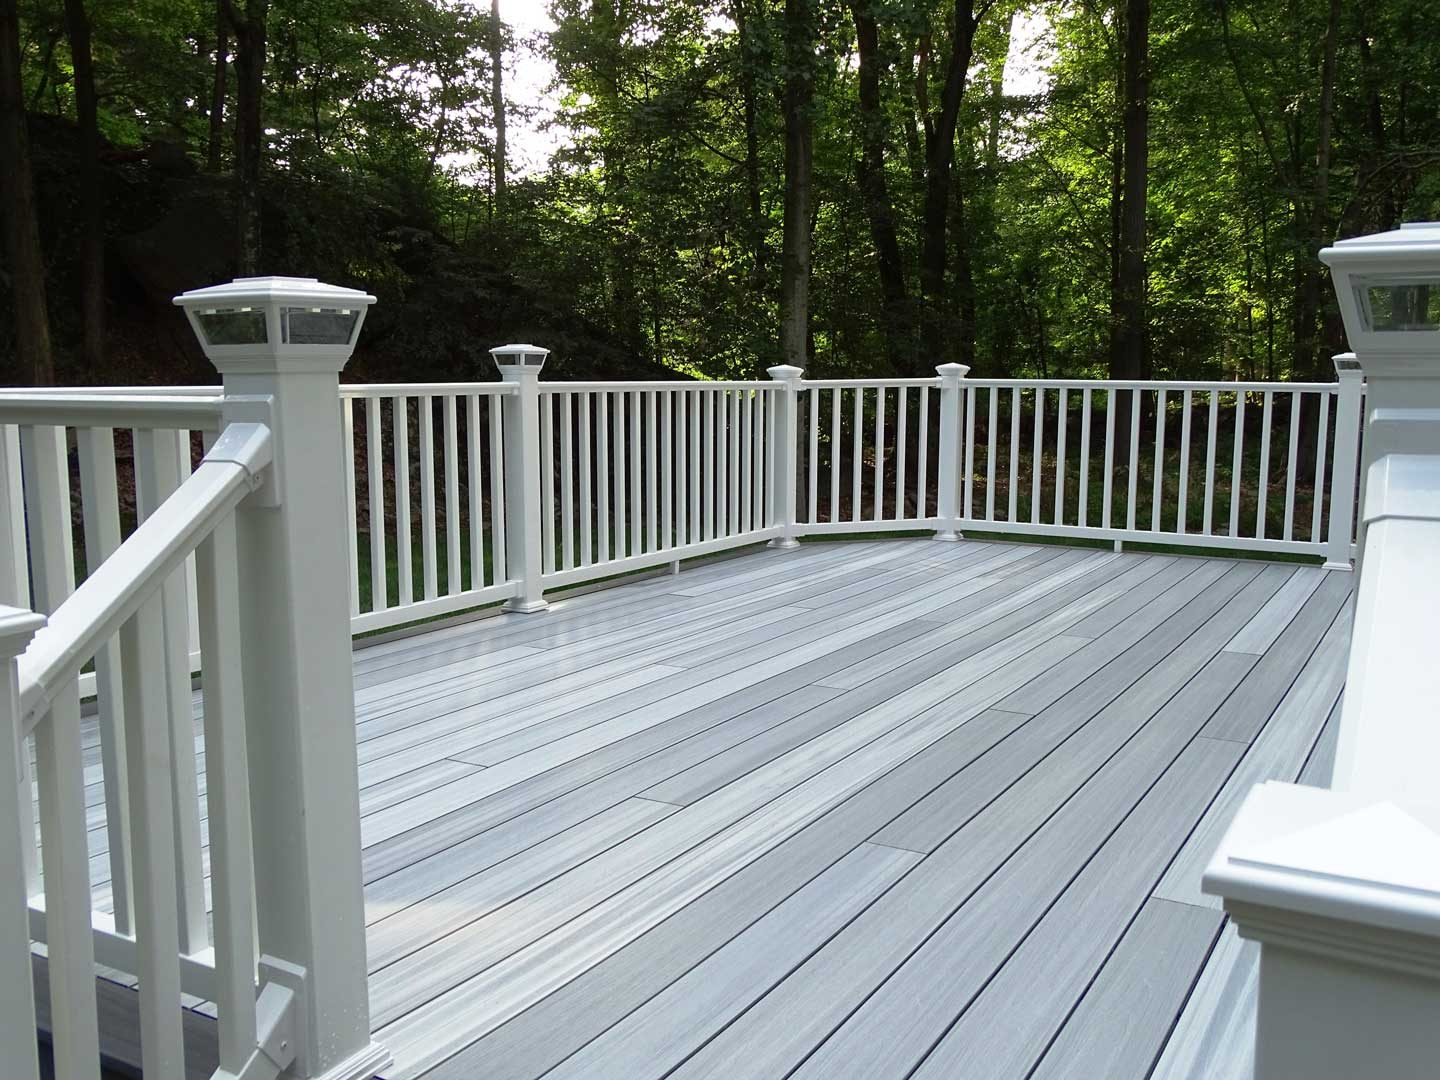 refurbish-old-wood-deck